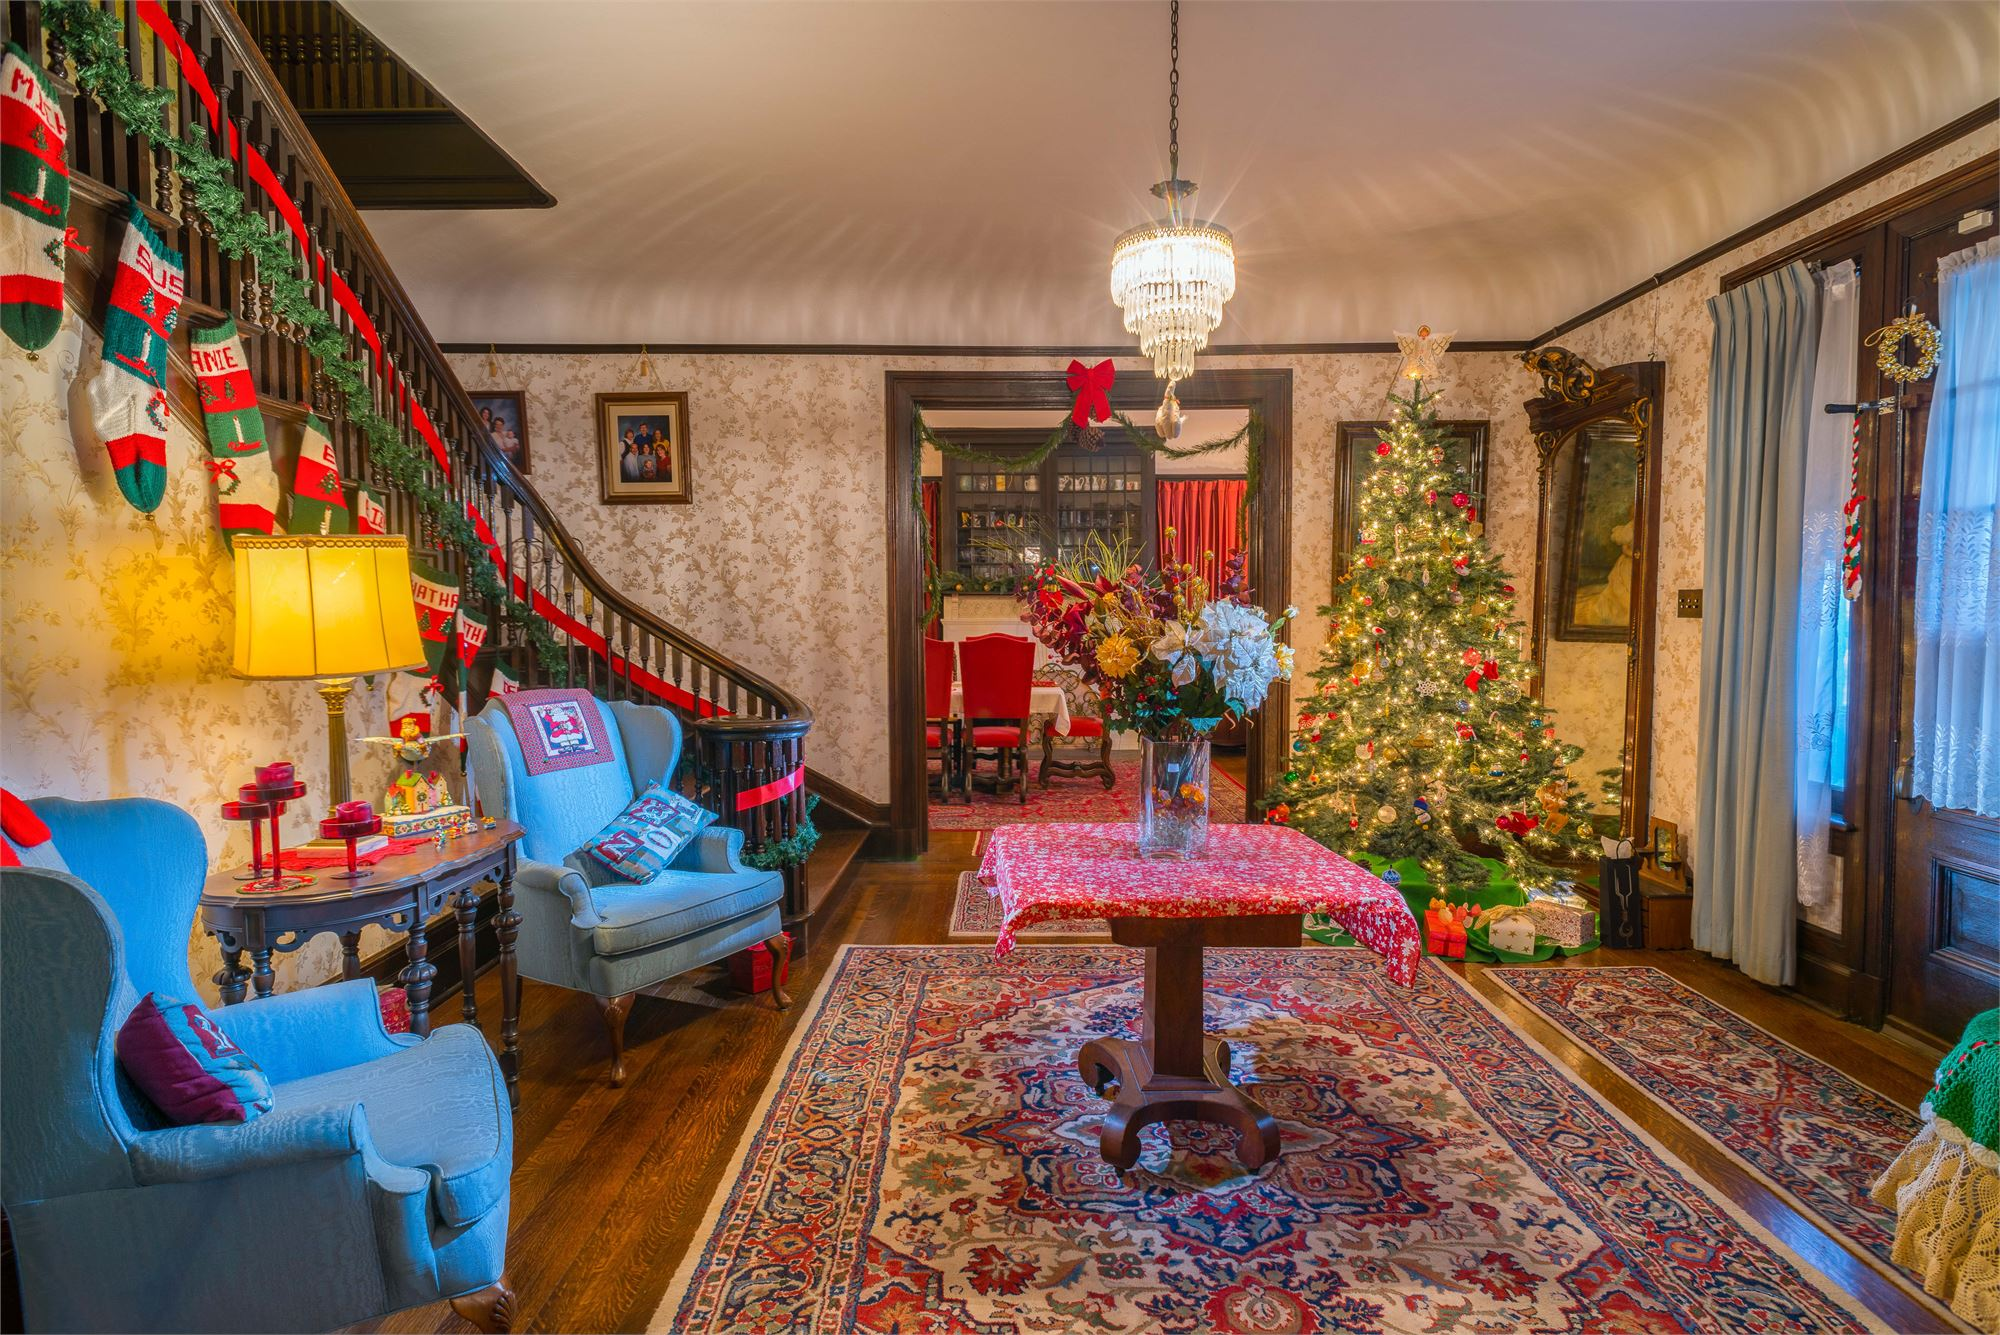 Home for the Holidays...in Murphysburg